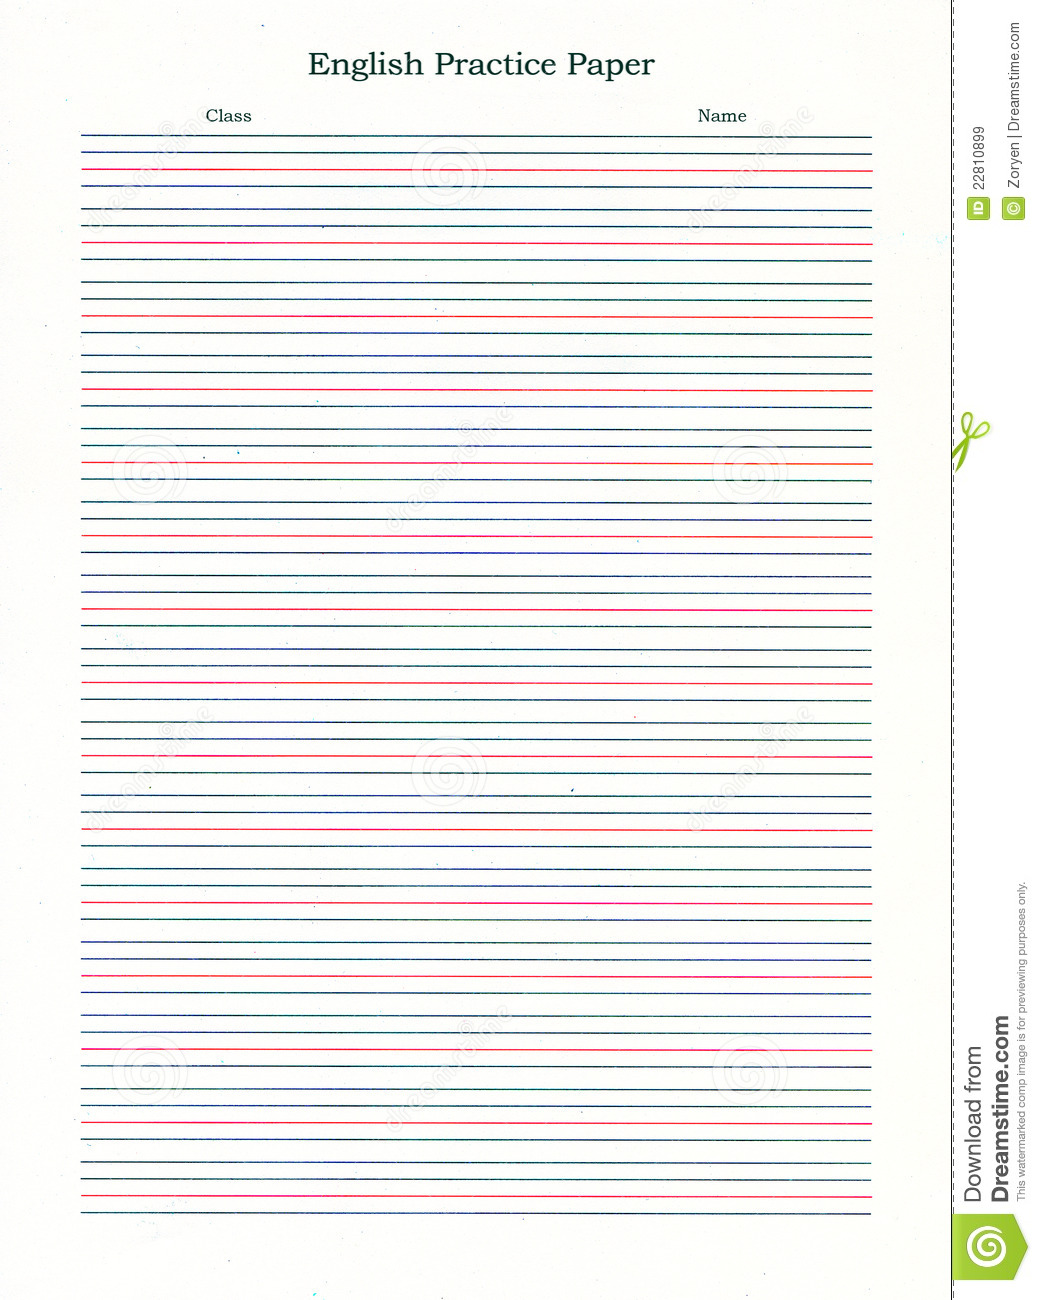 Royalty Free Stock Images Ruled Writing Paper Image22810899 on Kindergarten Worksheet With U